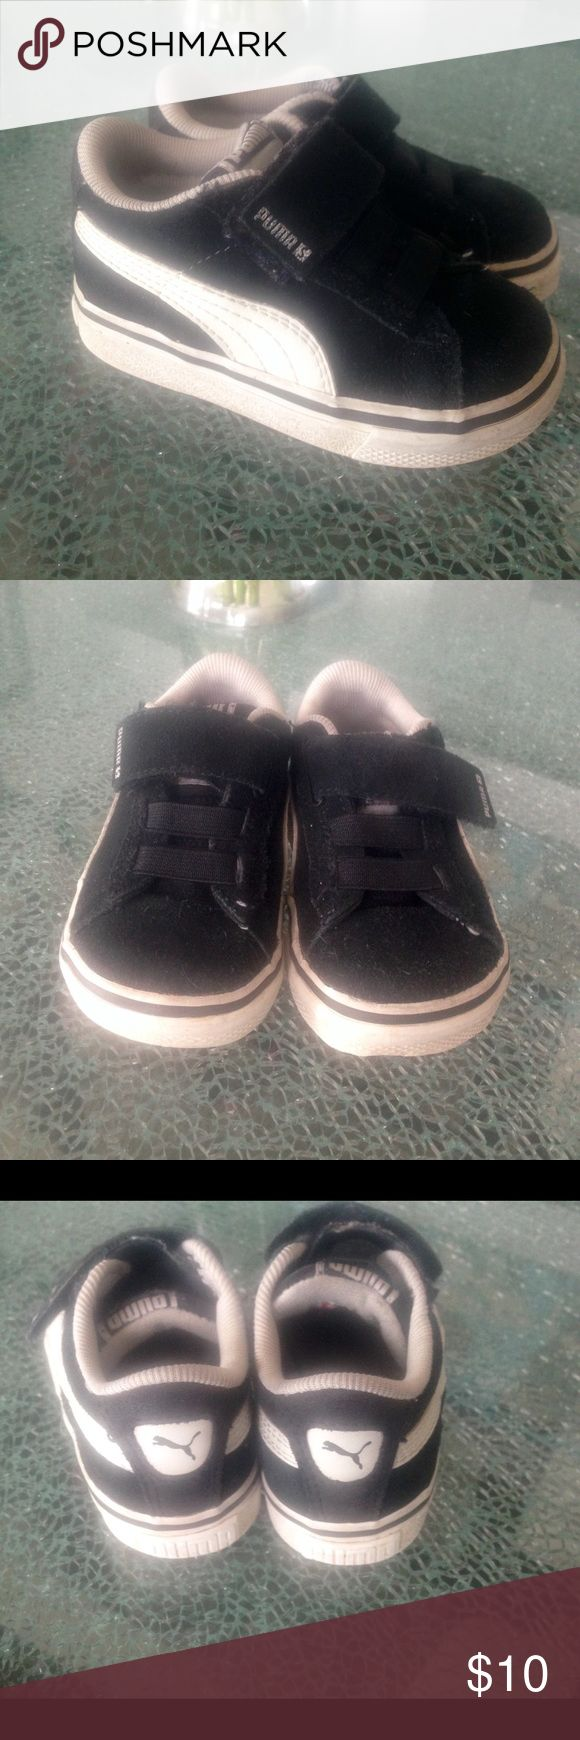 PUMA toddler size 5 Only worn a few times.  Velcro, easy to get on.  Toddler size 5.  Price is firm. Puma Shoes Sneakers